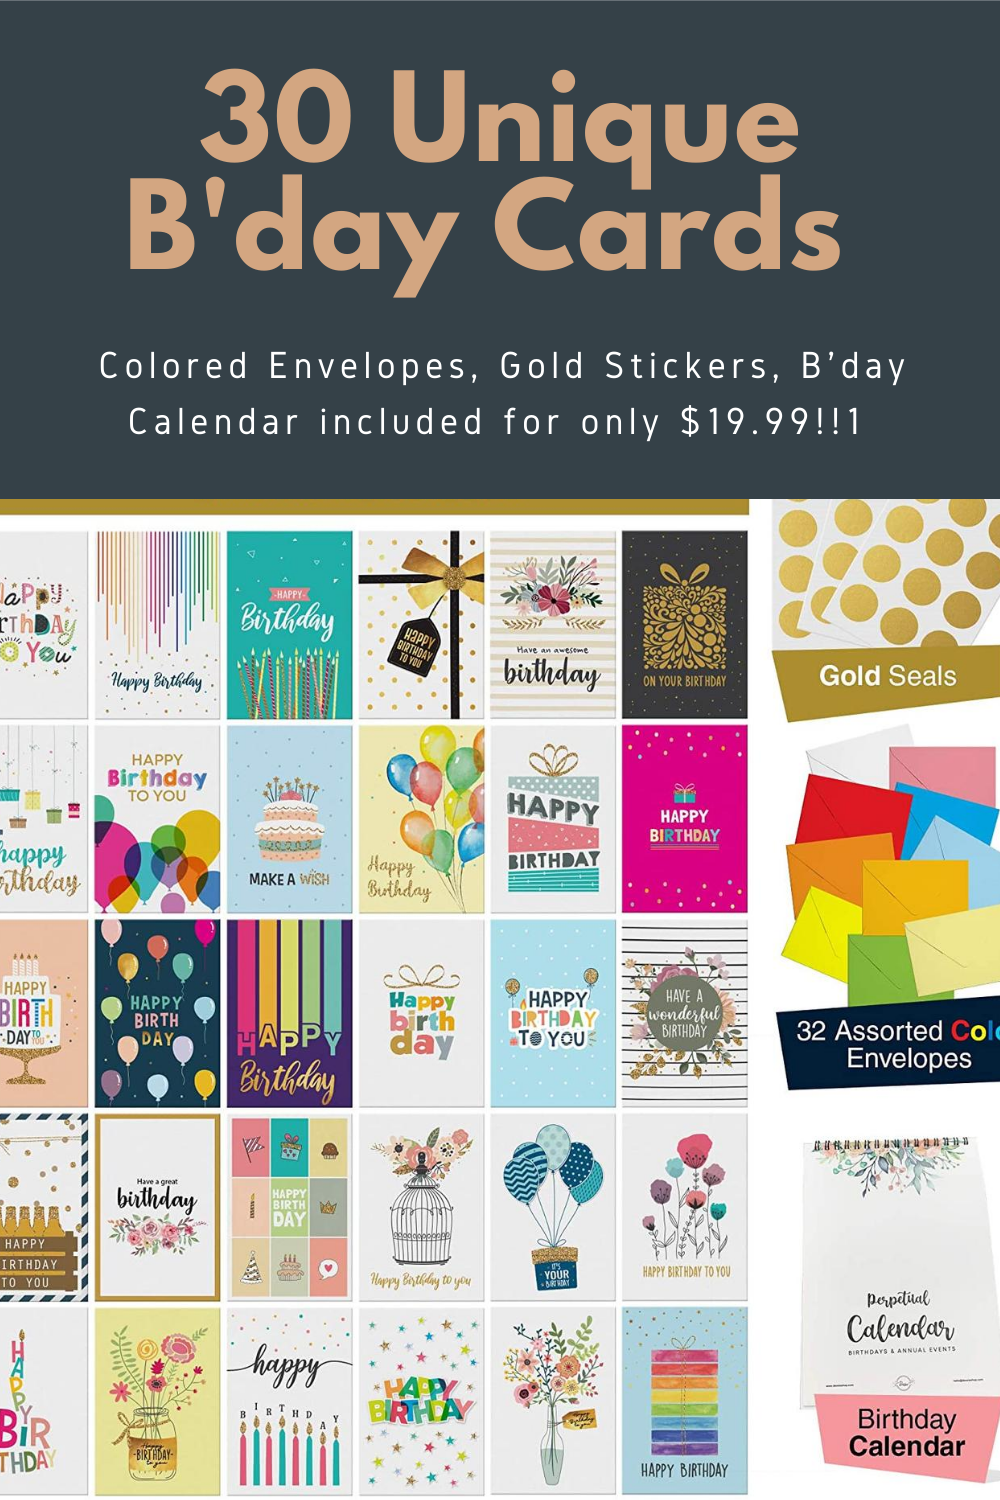 30 Superior Quality Birthday Cards With Gold Accents Colored Envelopes Gold Seals B Day Calendar In 2020 Card Making Birthday Gold Foil Birthday Card Birthday Cards